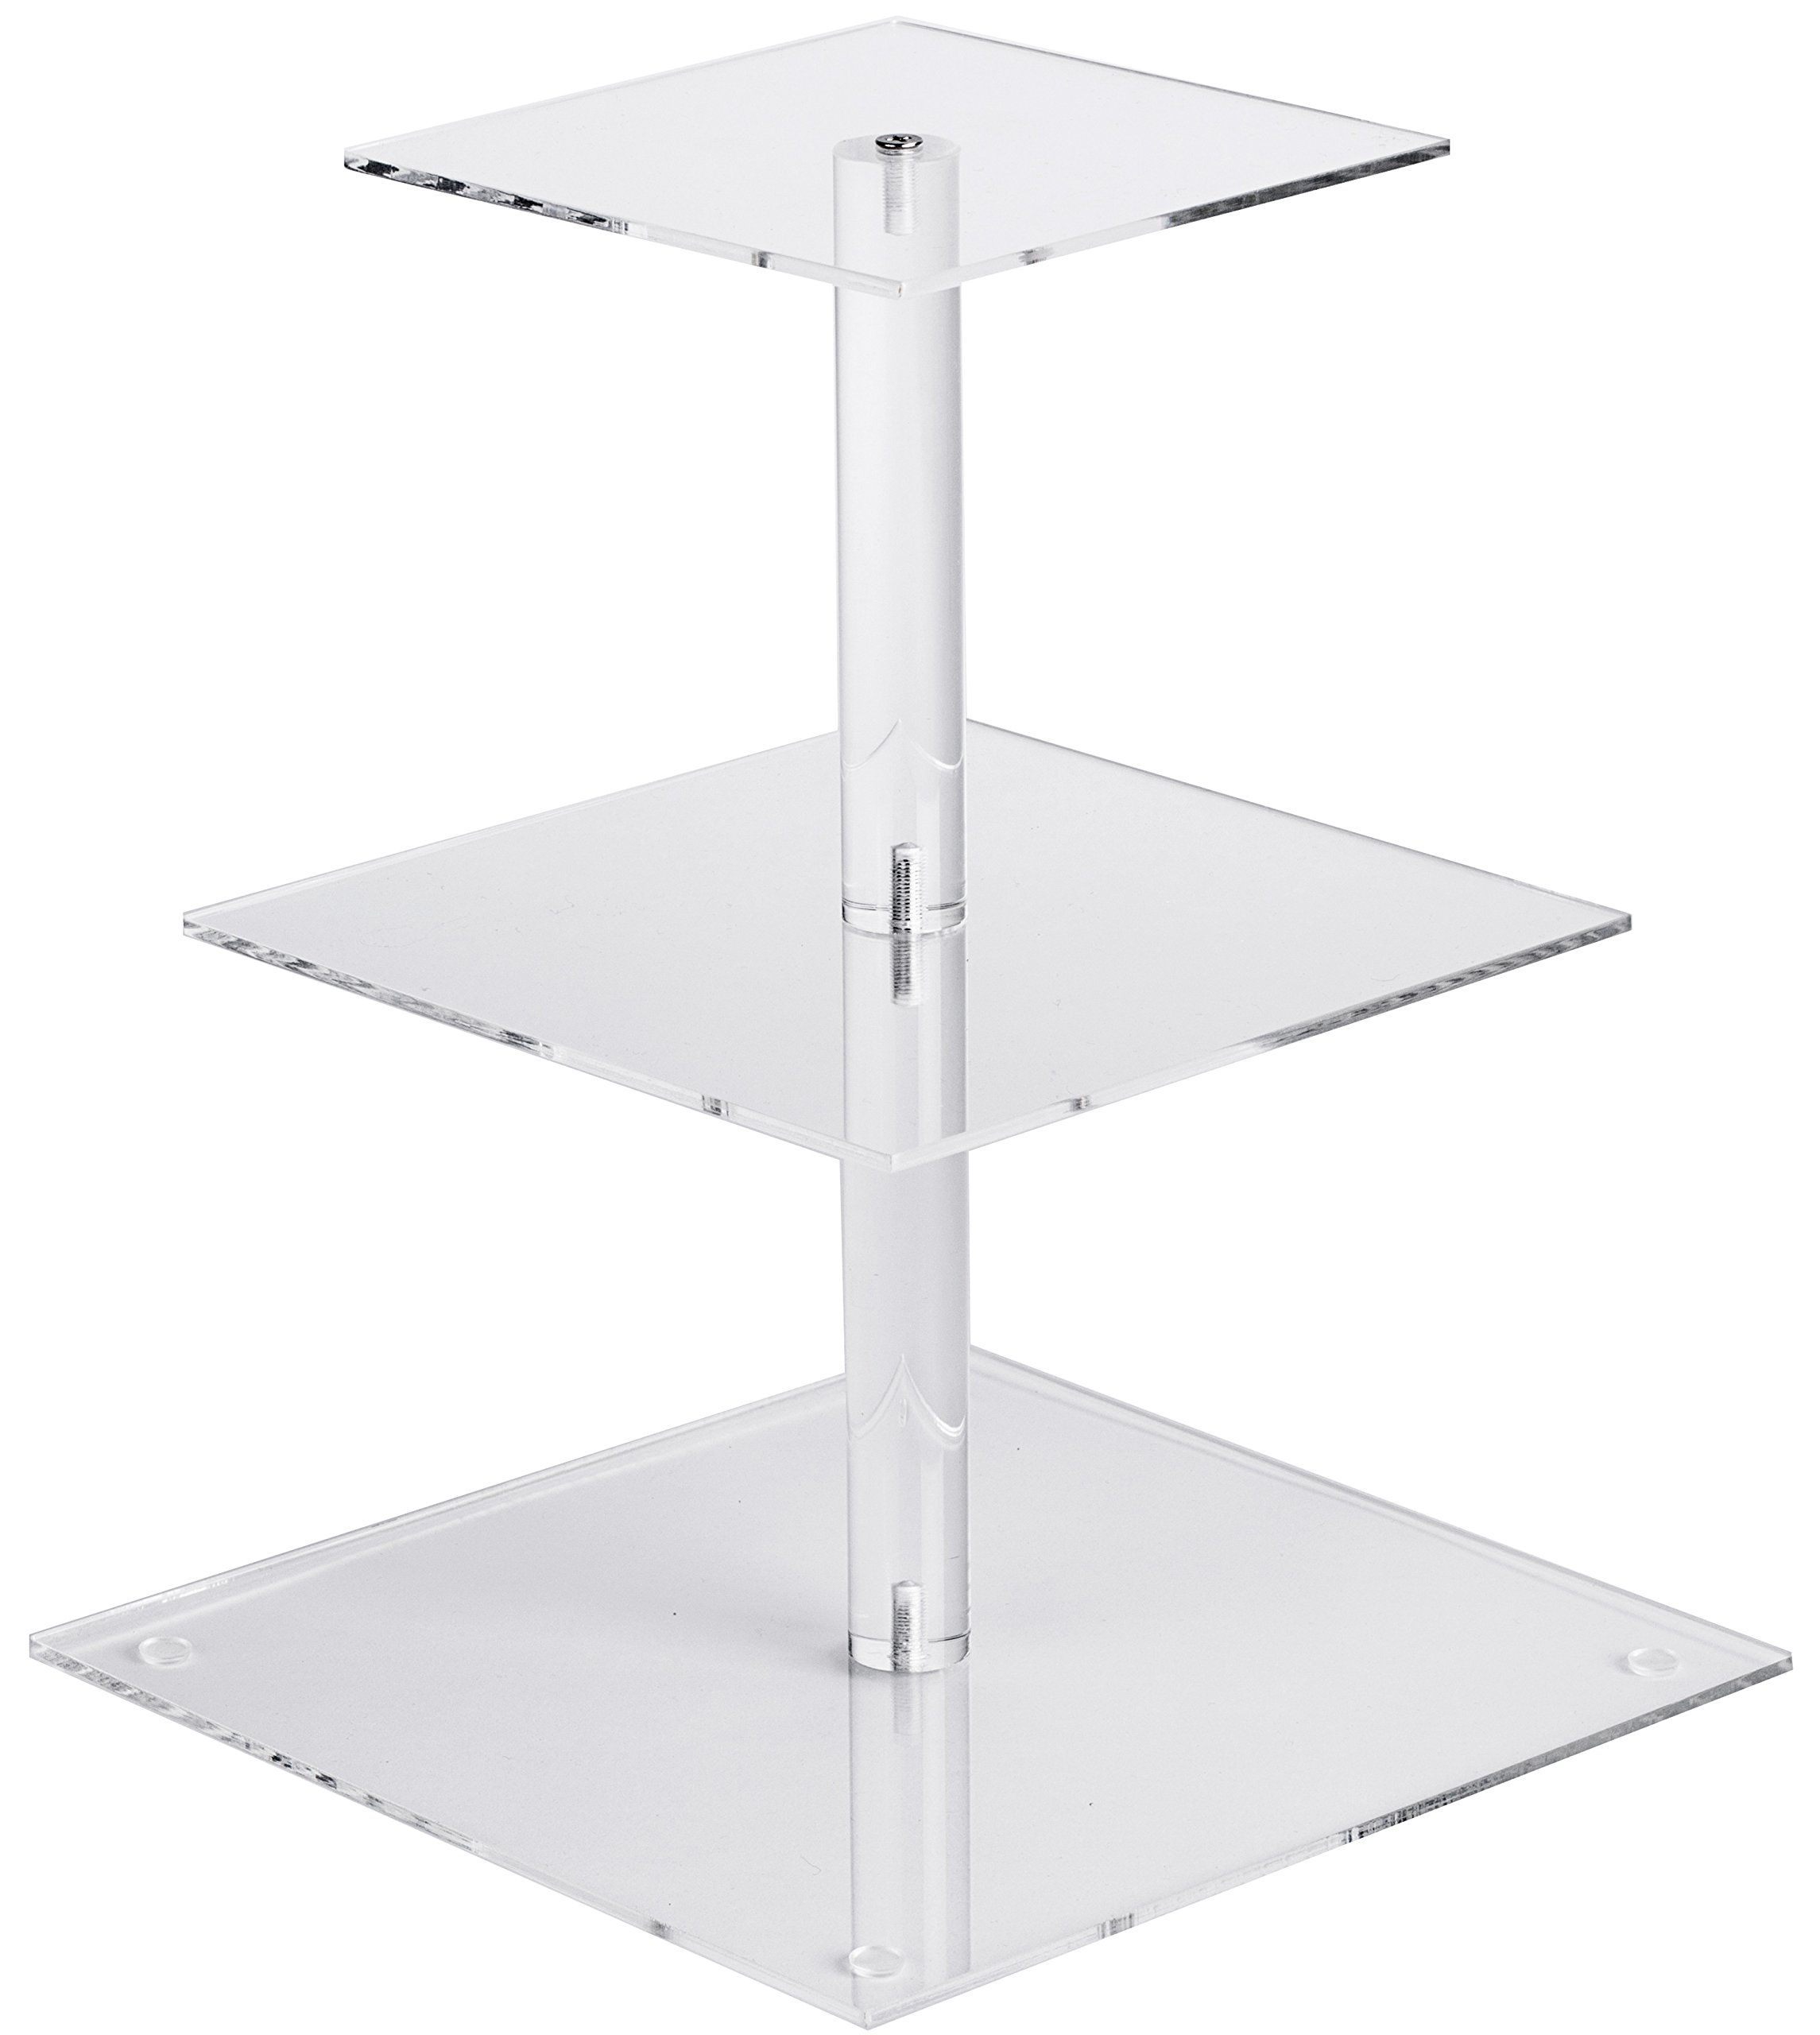 YestBuy 3 Tier Maypole Square Wedding Party Tree Tower Acrylic Cupcake Display Stand 3 Tier Square(6'' between 2 layers)